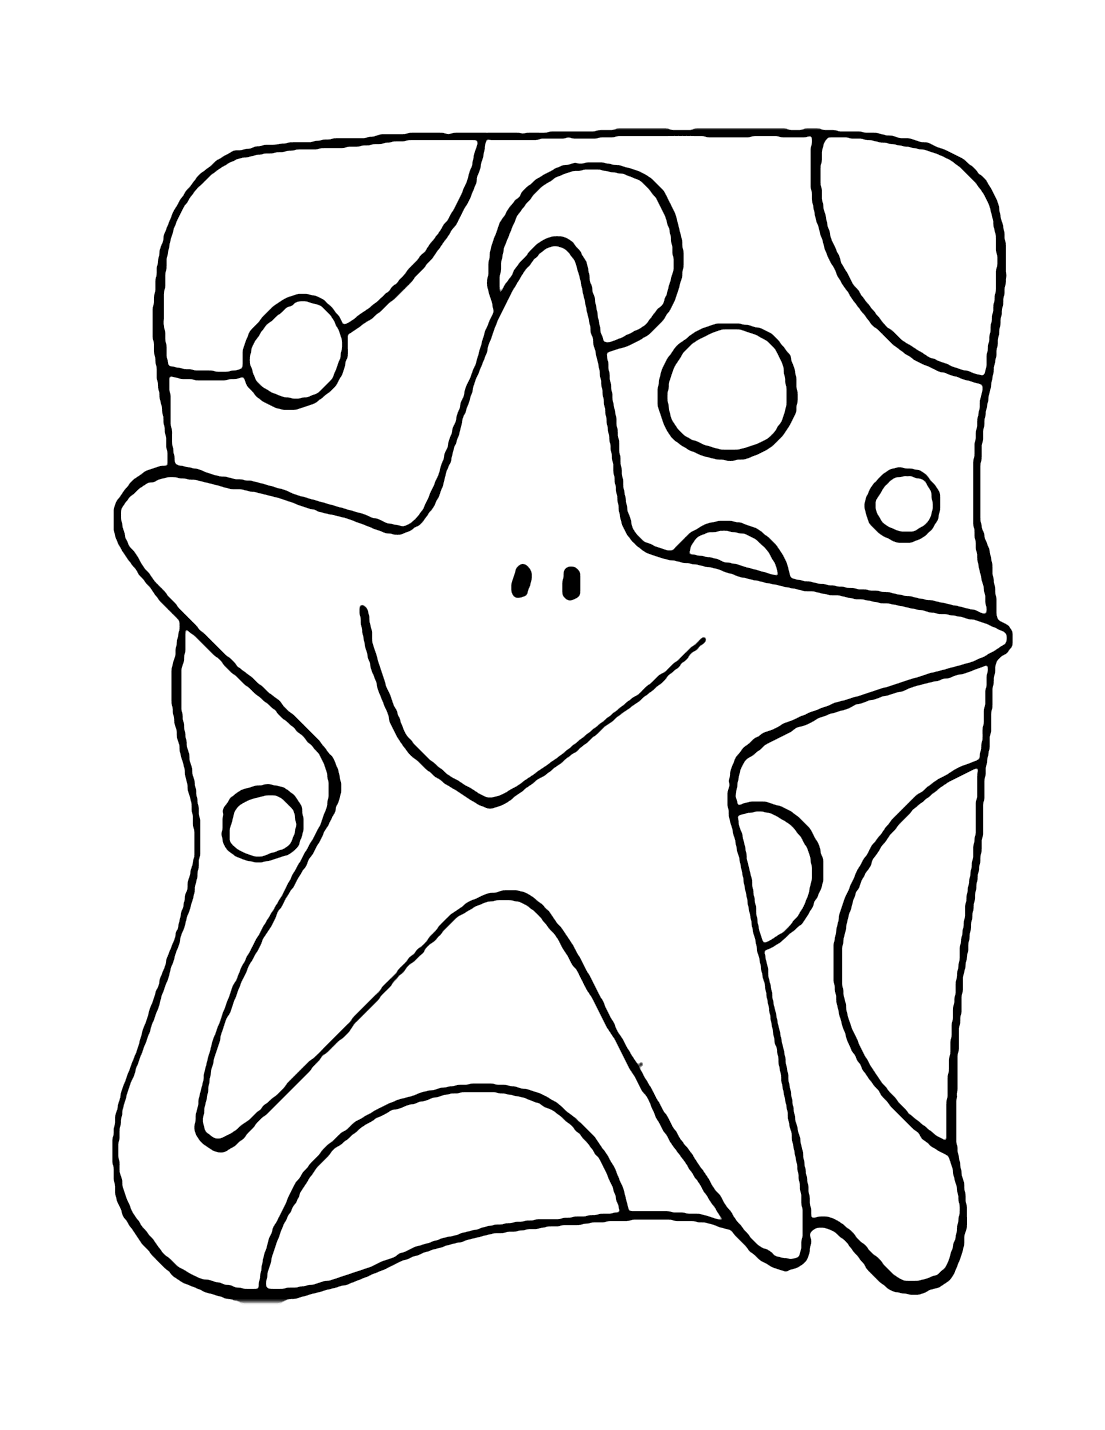 Fun Star Coloring Page